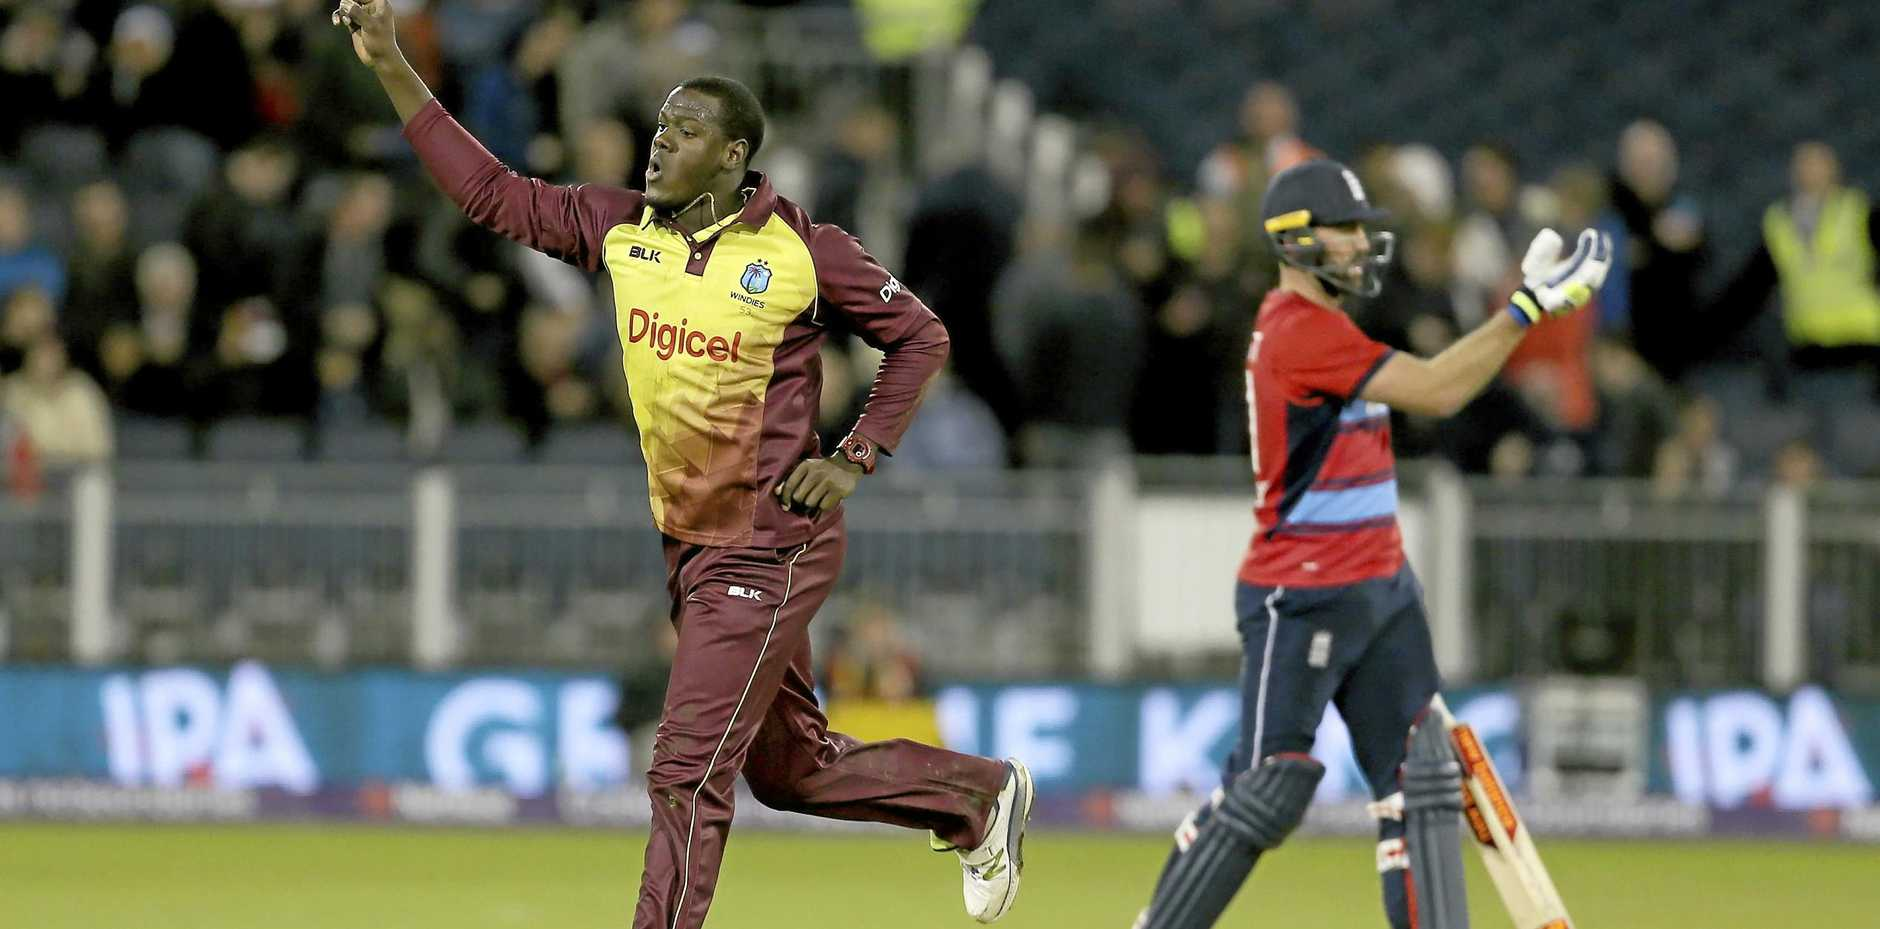 West Indies captain Carlos Brathwaite celebrates after taking the wicket of England's Liam Plunkett to win the T20 match in Durham.